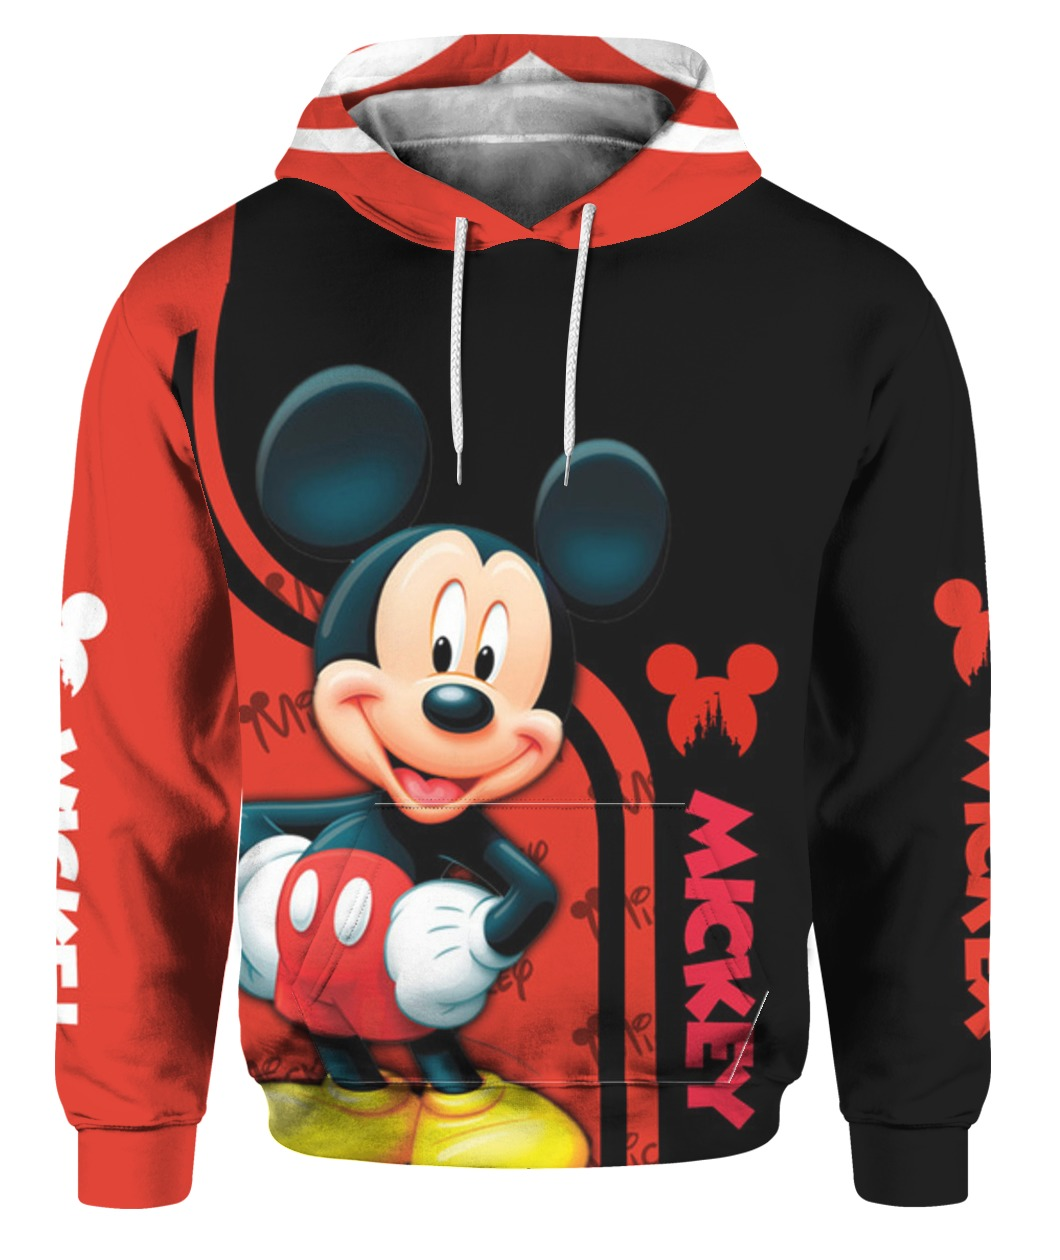 Mickey mouse all over print hoodie